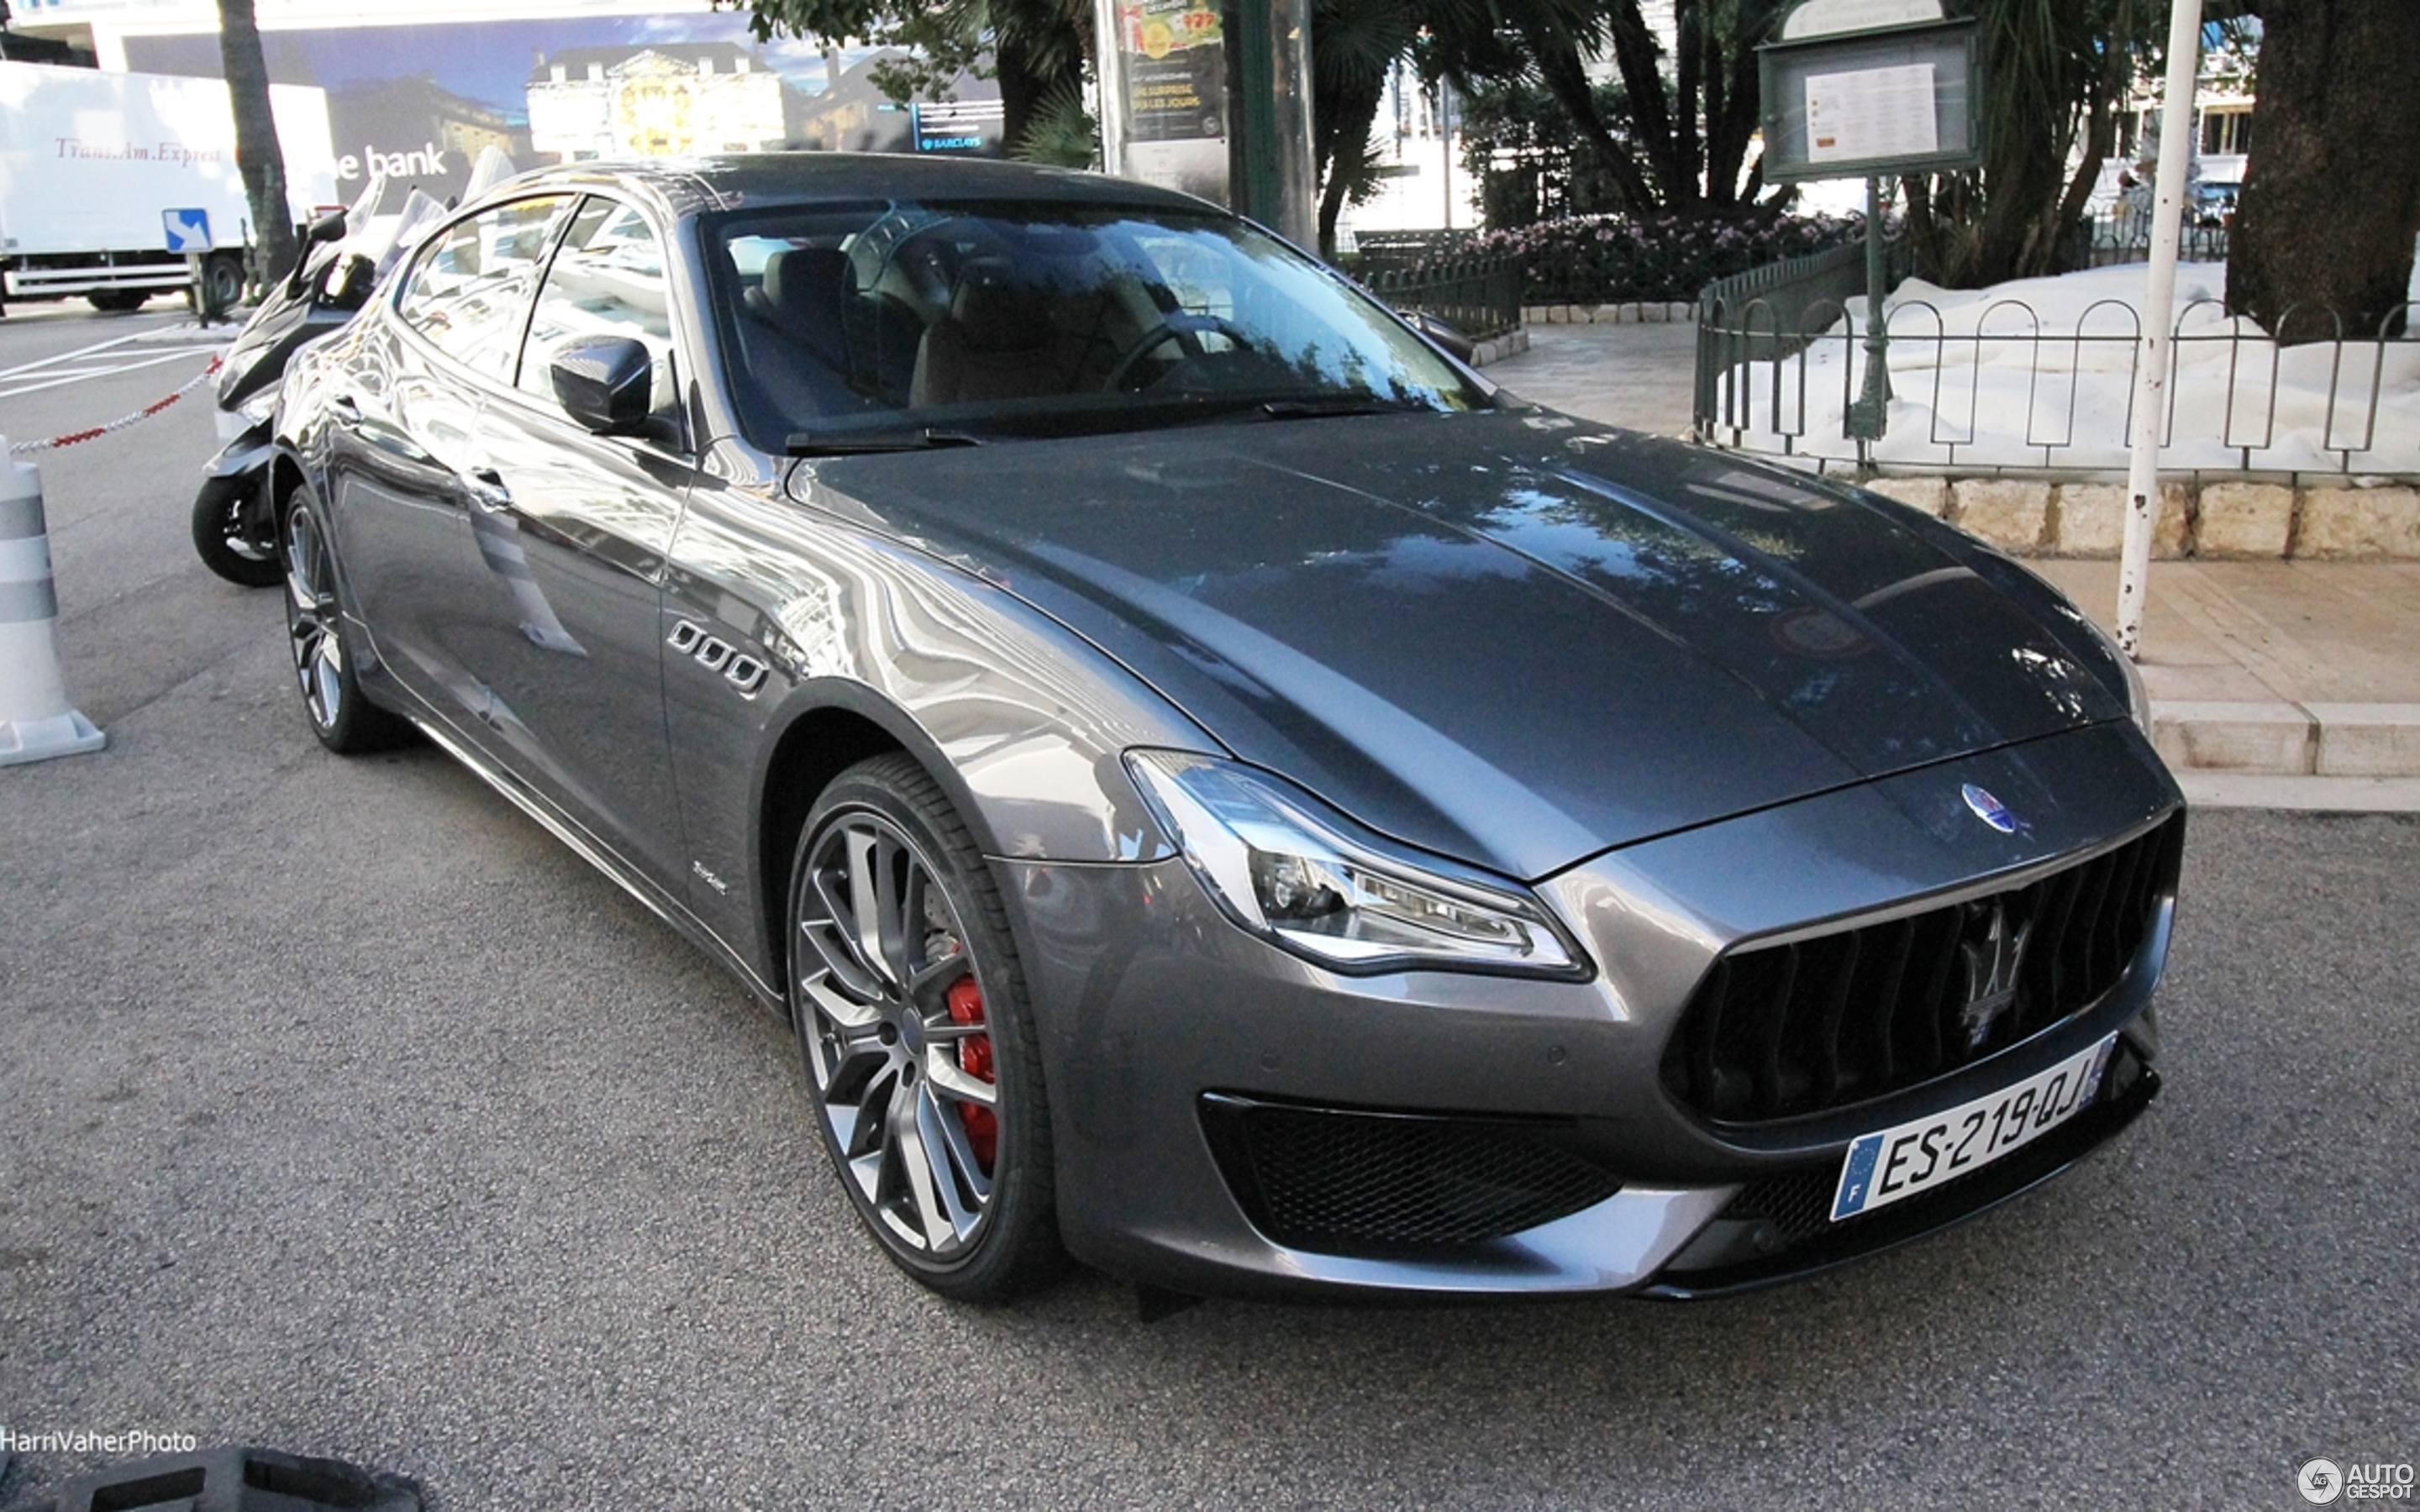 maserati quattroporte s gransport 22 december 2017 autogespot. Black Bedroom Furniture Sets. Home Design Ideas